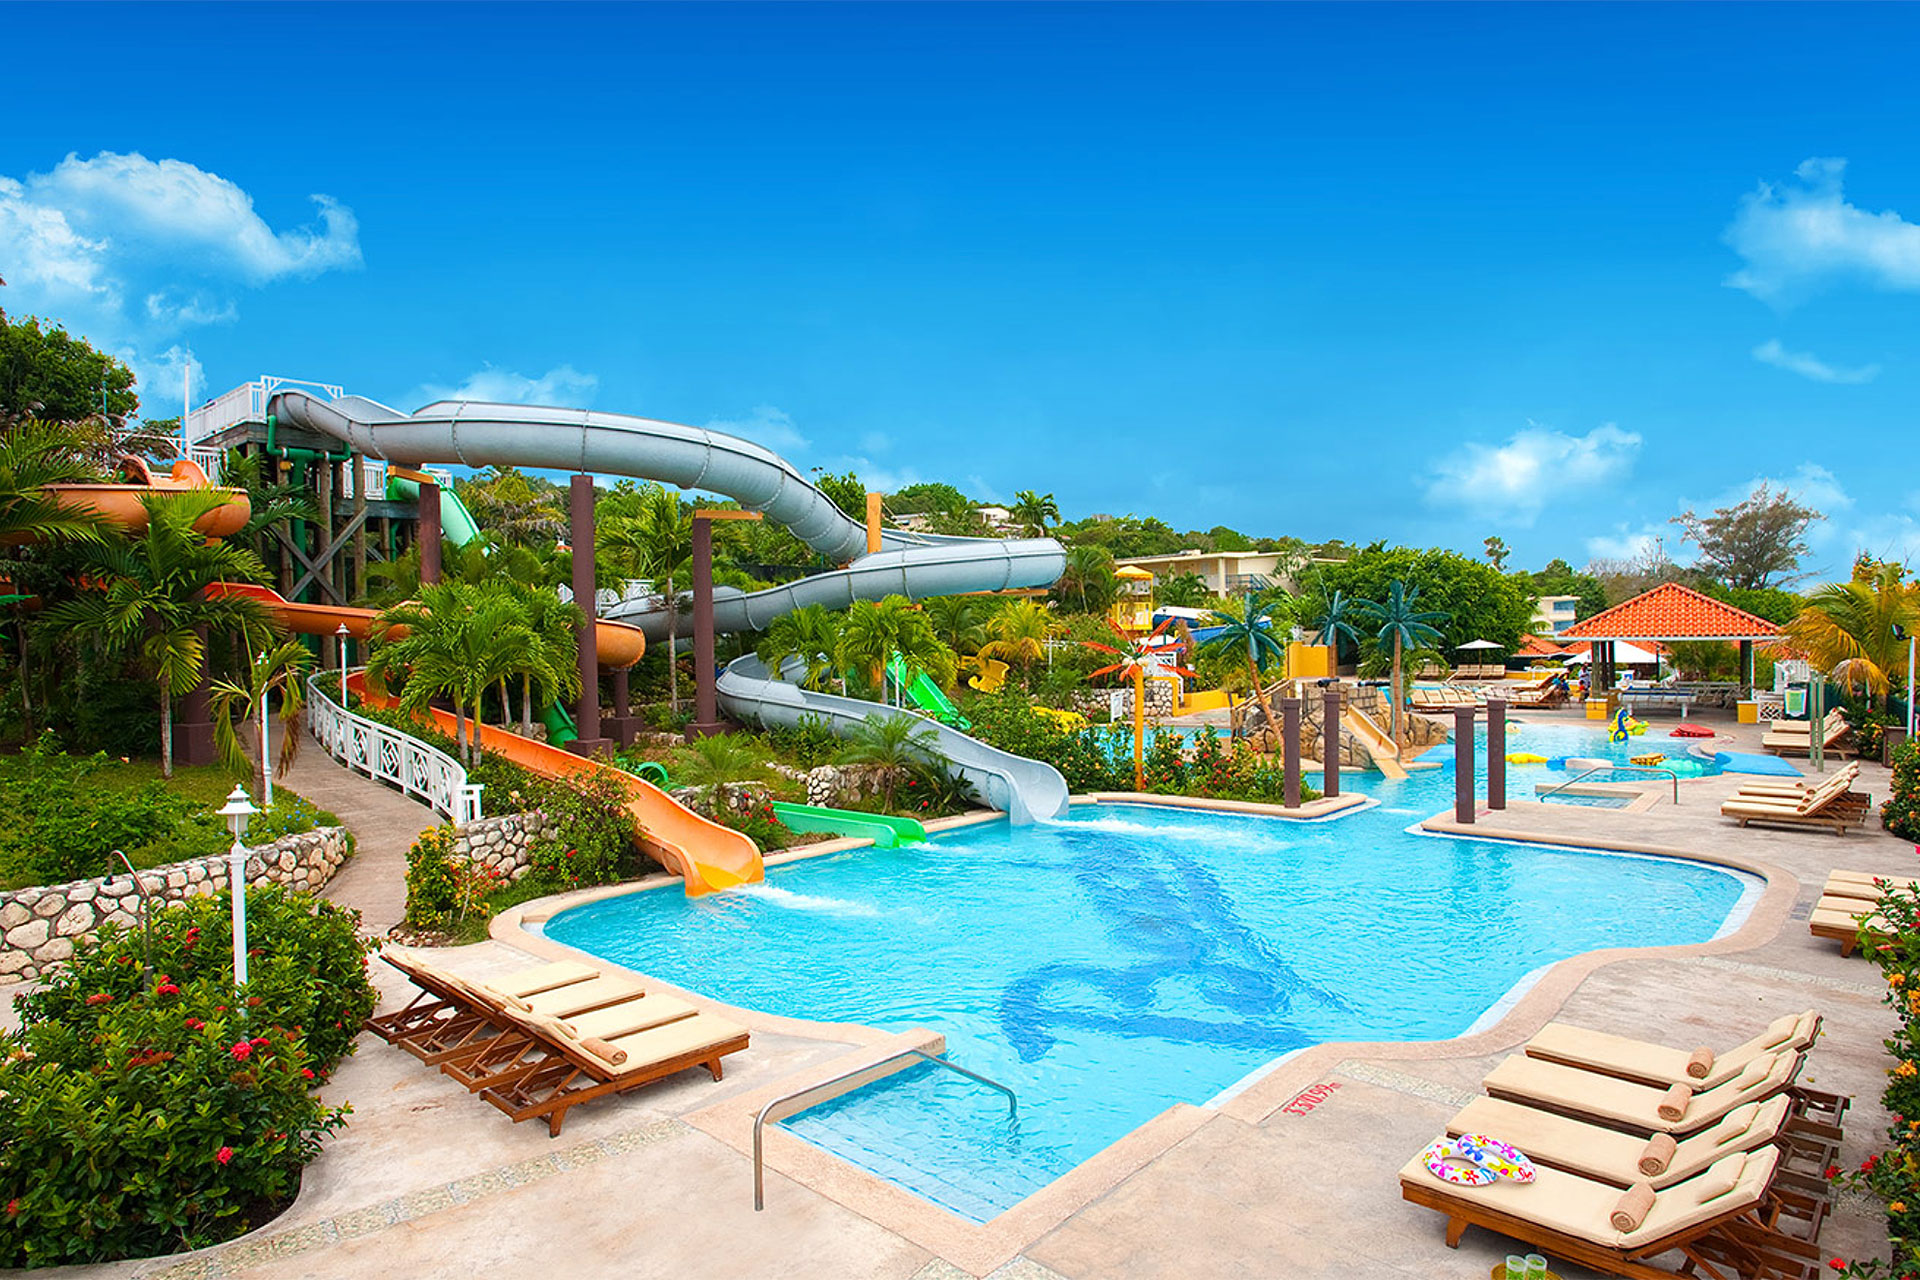 Water Park at Beaches Ocho Rios; Courtesy of Beaches Ocho Rios